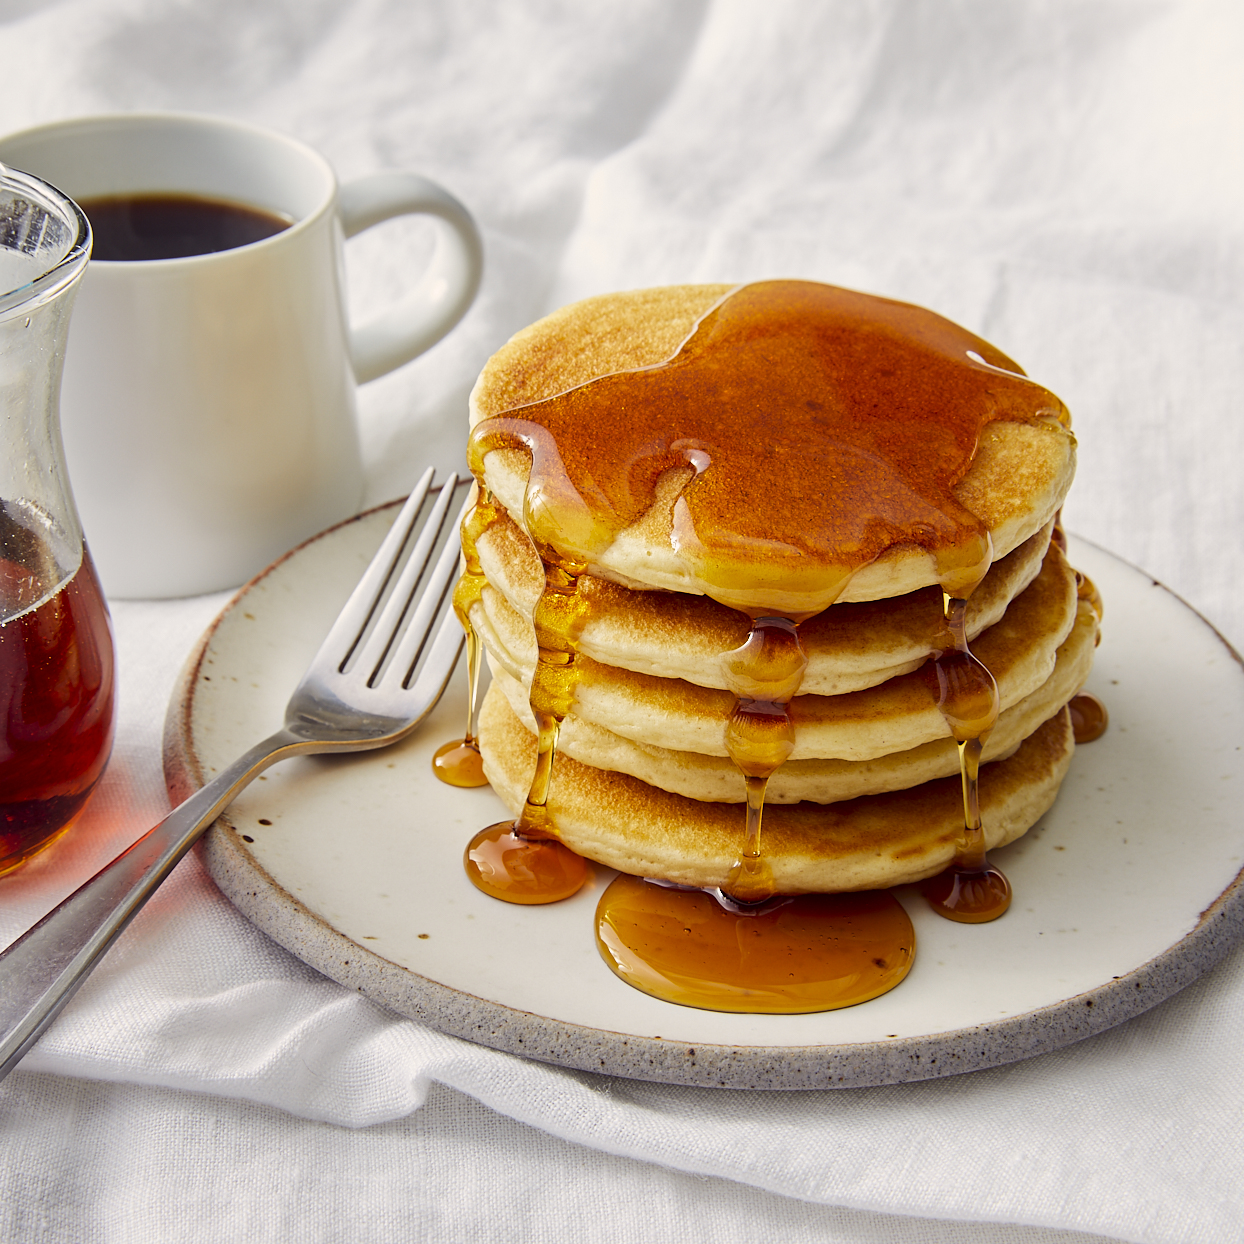 high stack of pancakes covered in syrup